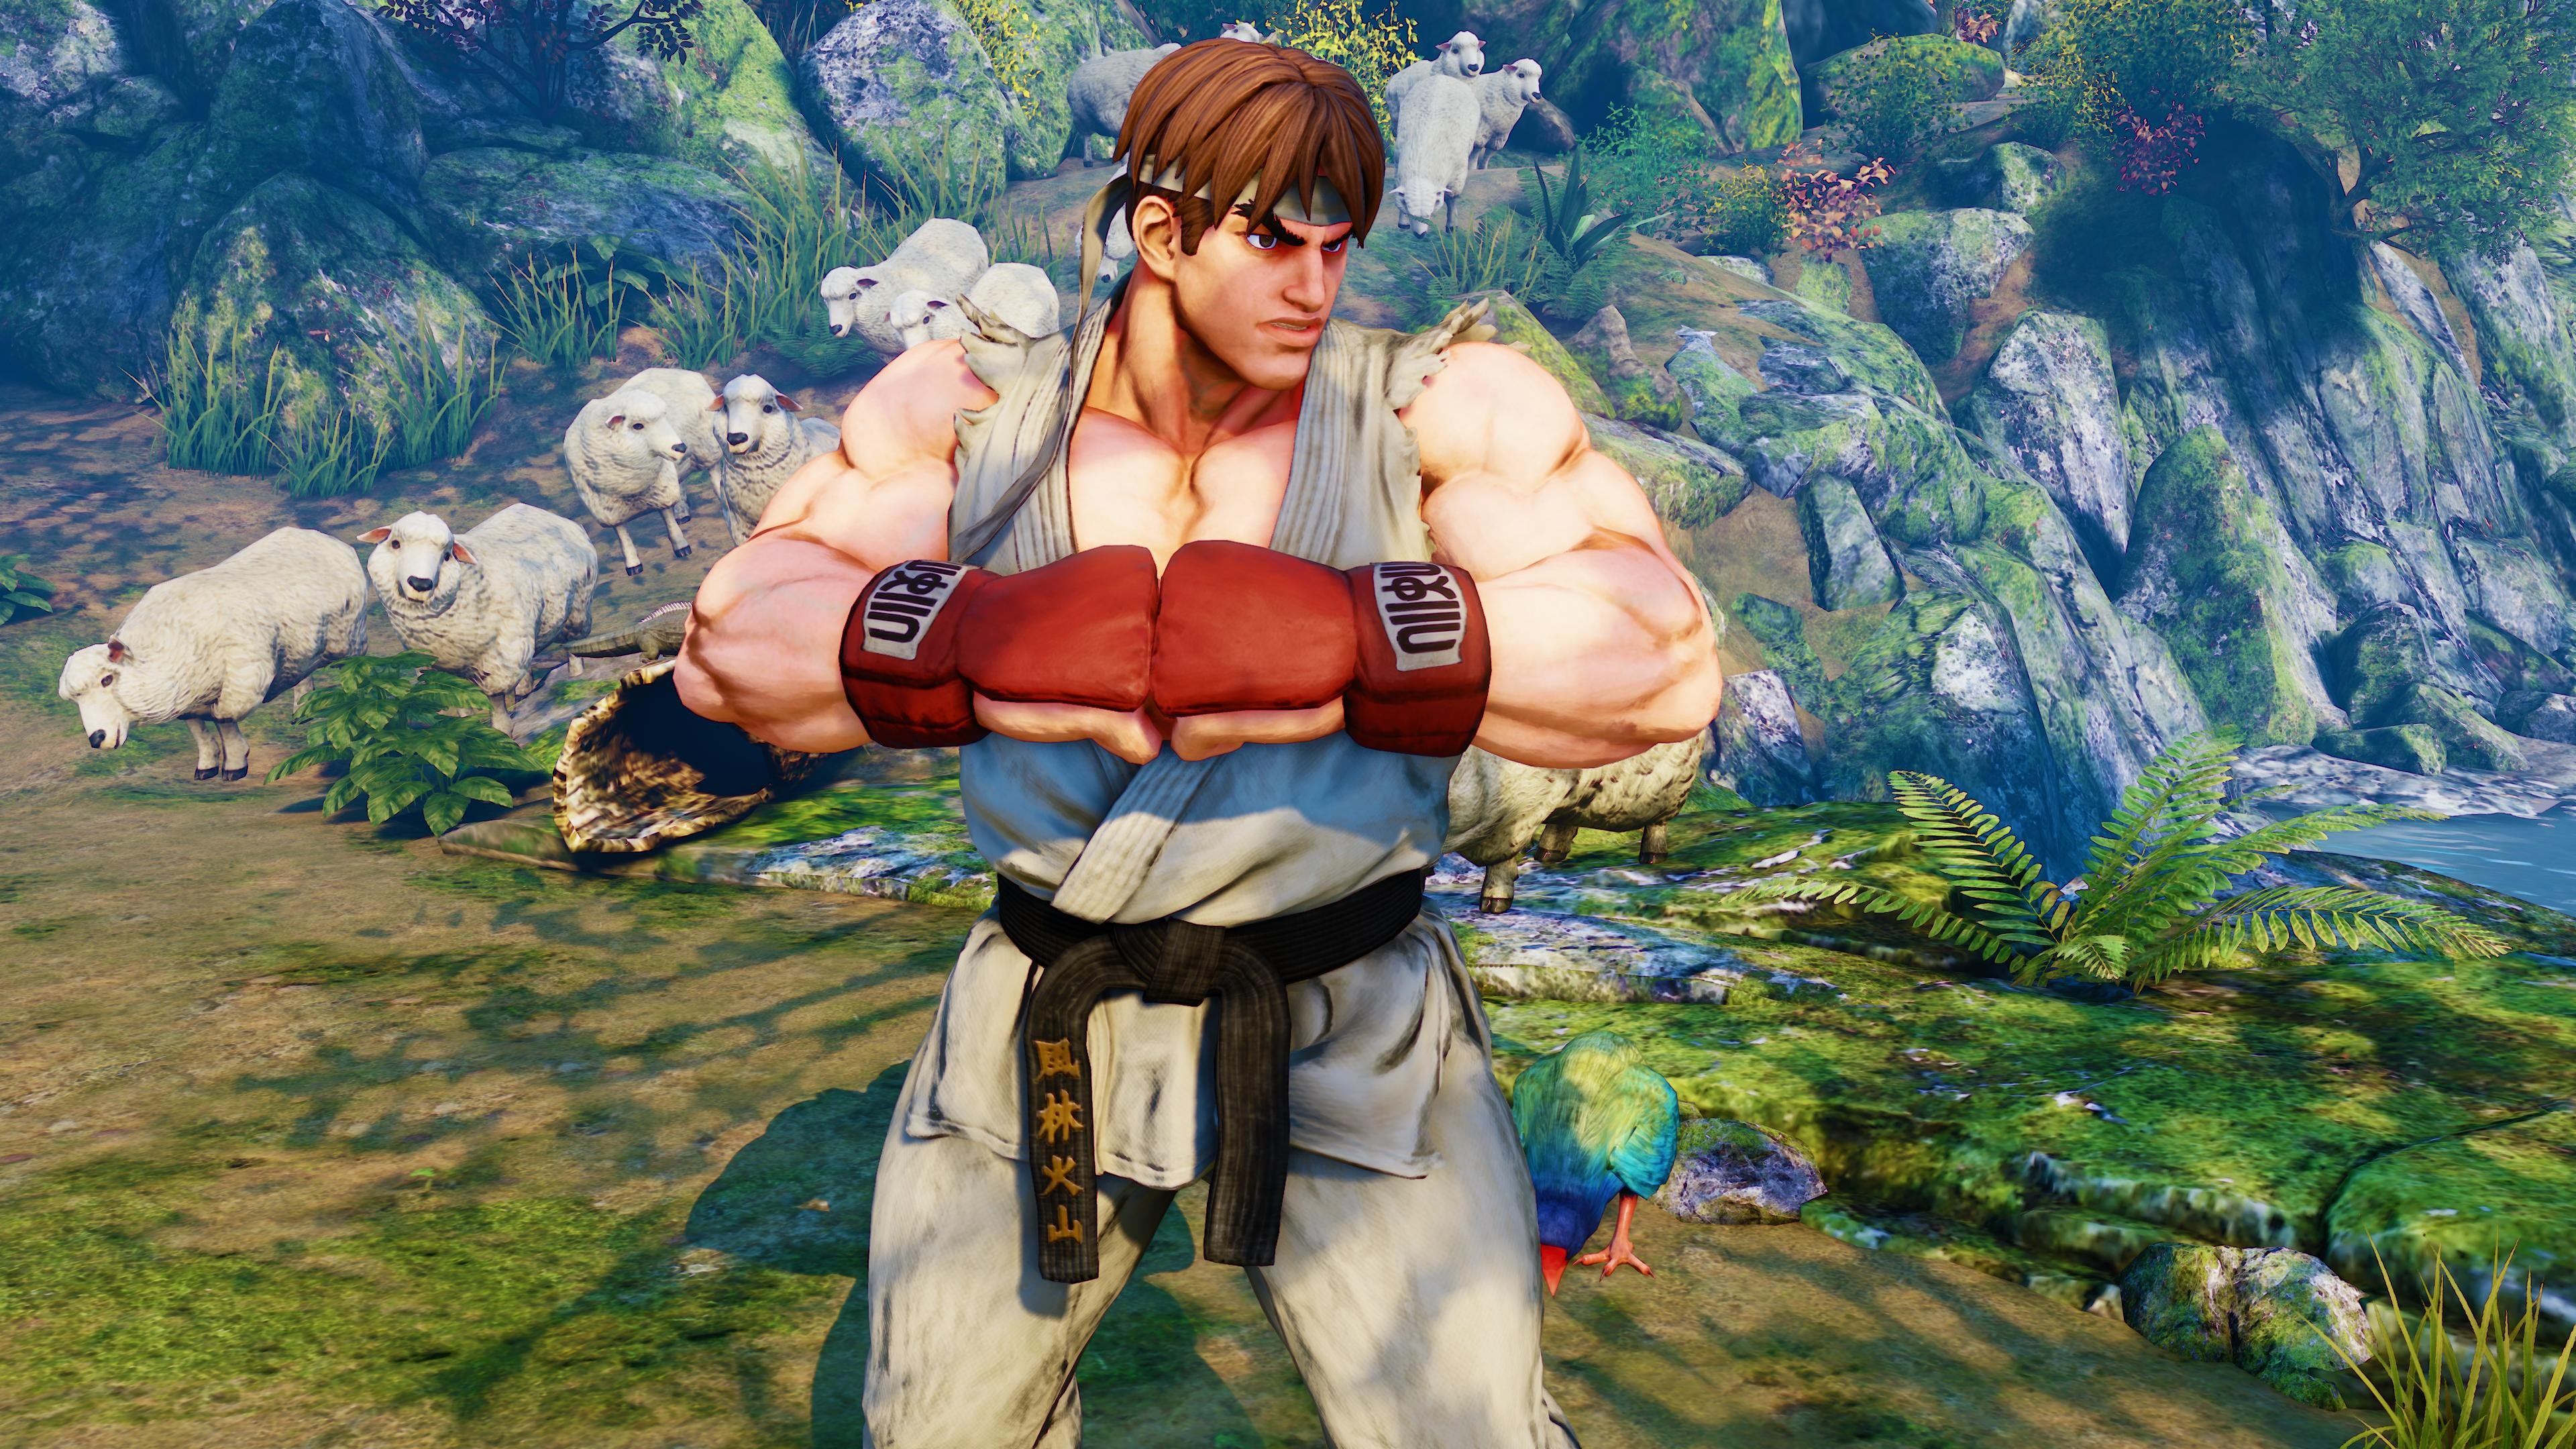 Beard Hd Wallpapers Download Wallpaper Street Fighter 5 Ryu Best Games Fantasy Pc